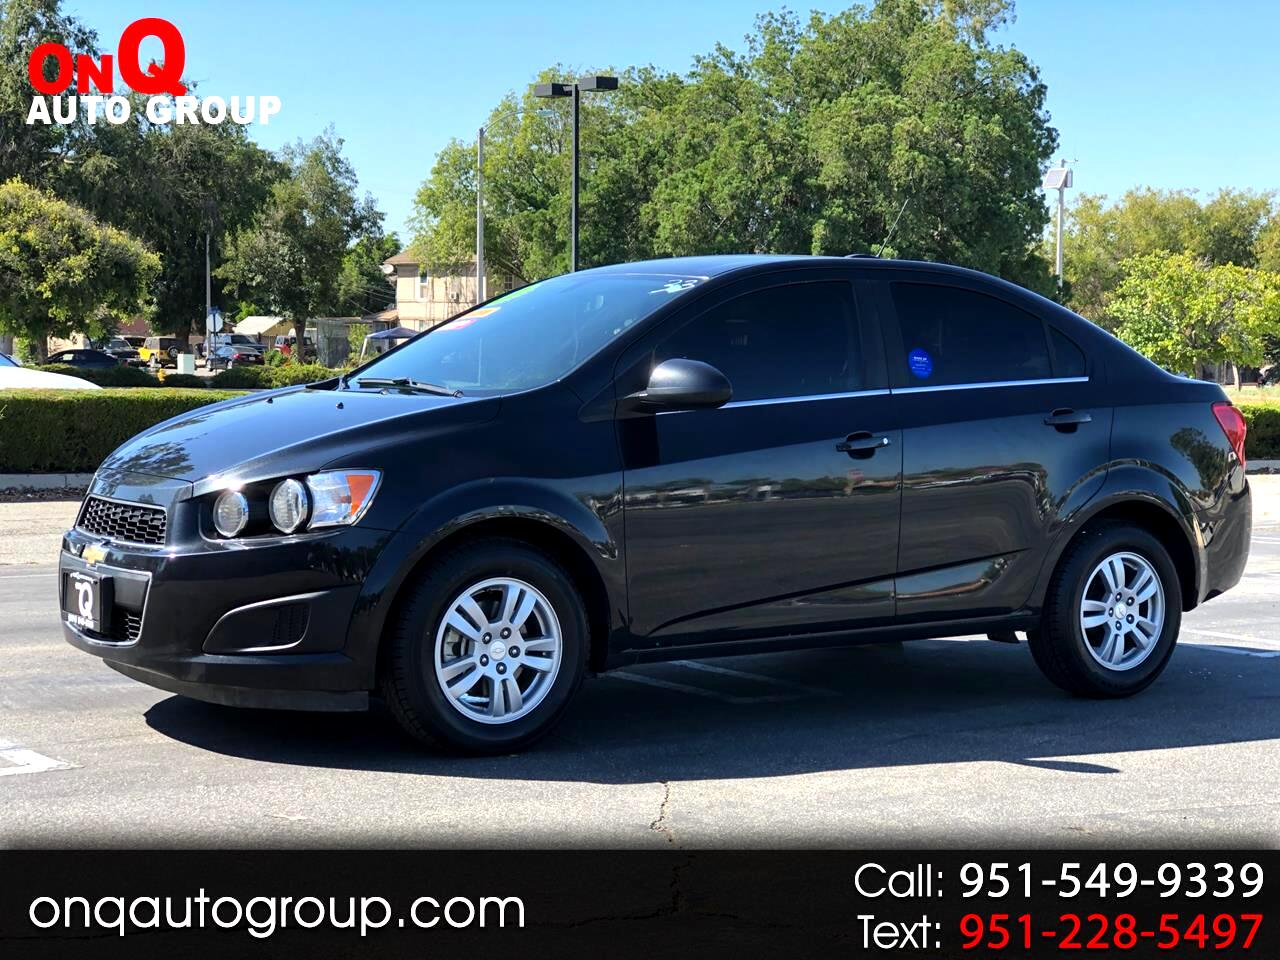 2015 Chevrolet Sonic 4dr Sdn Manual LT